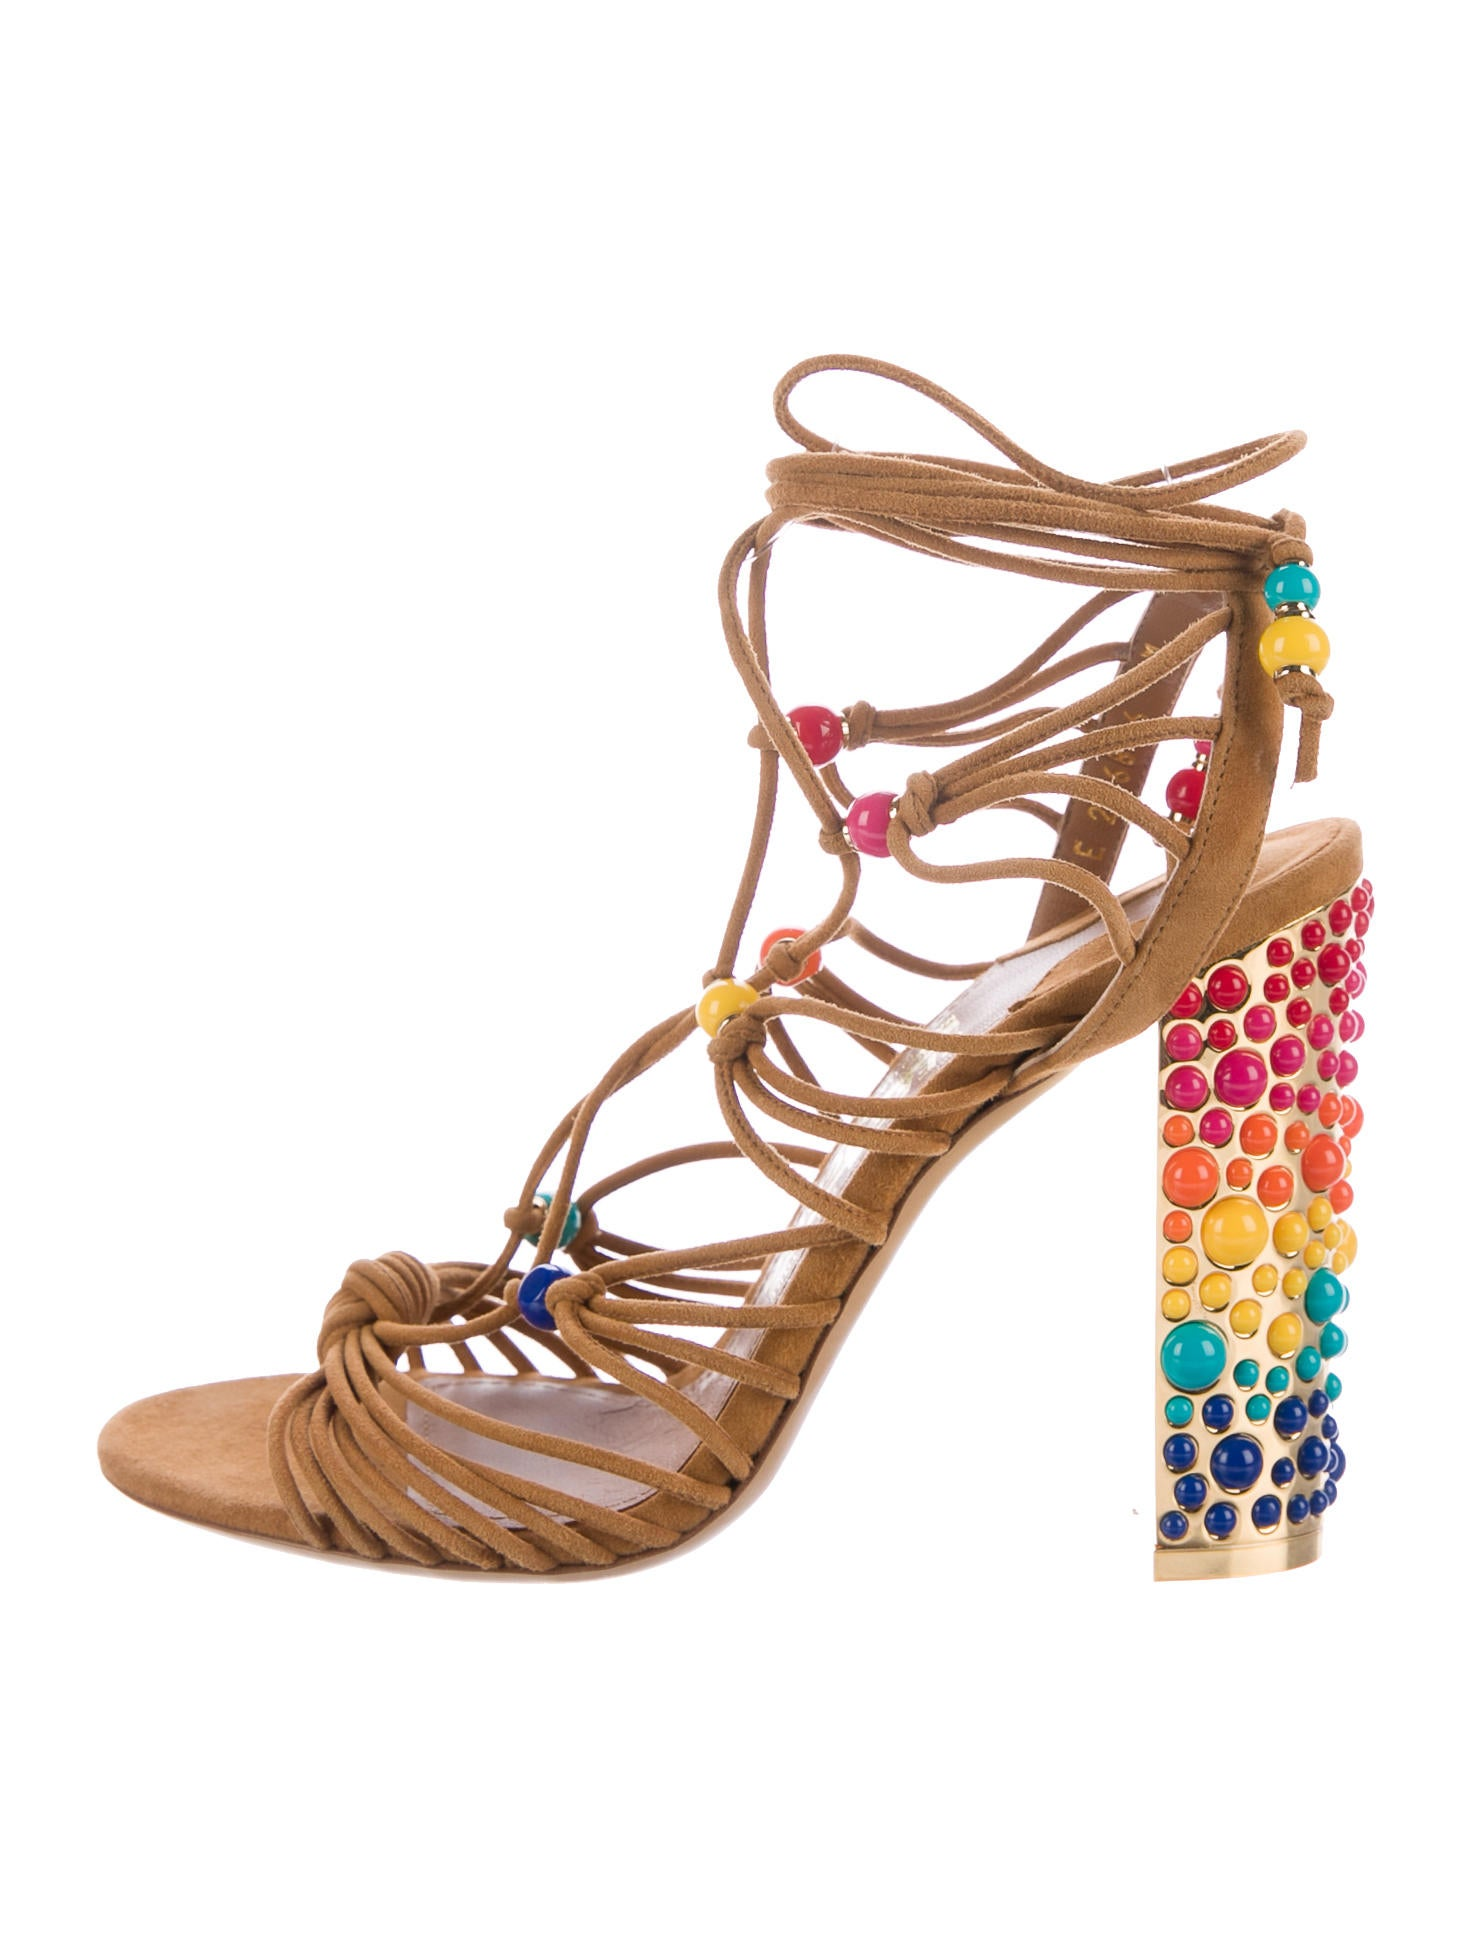 shop offer Salvatore Ferragamo Suede Embellished Sandals new arrival online sale finishline outlet where to buy clearance original jC7q99tTF